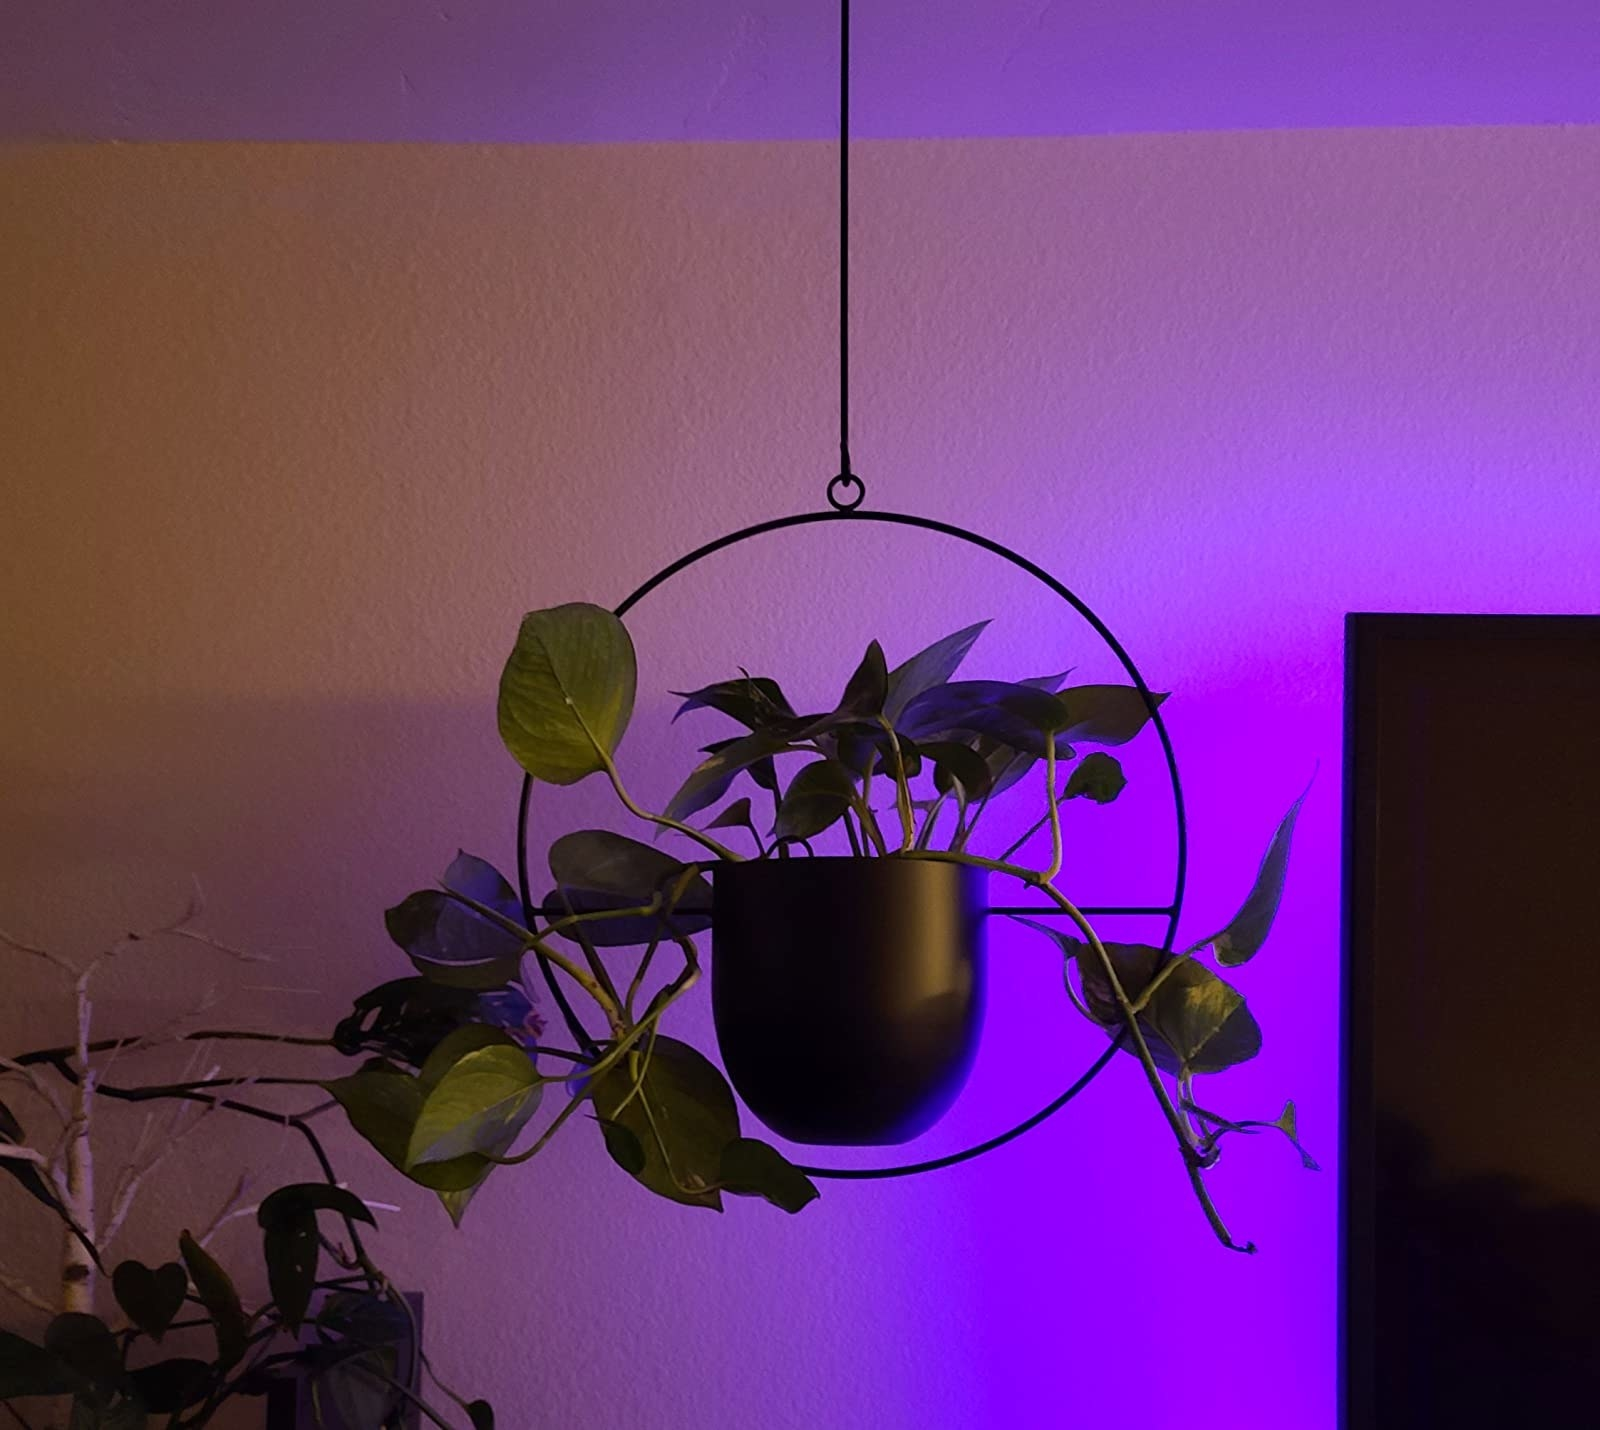 The black planter hanging in the room. The product has a stiff circular frame and a solid hanging wire; the pot is right in the middle of the circle frame and held in place by a single horizontal wire.